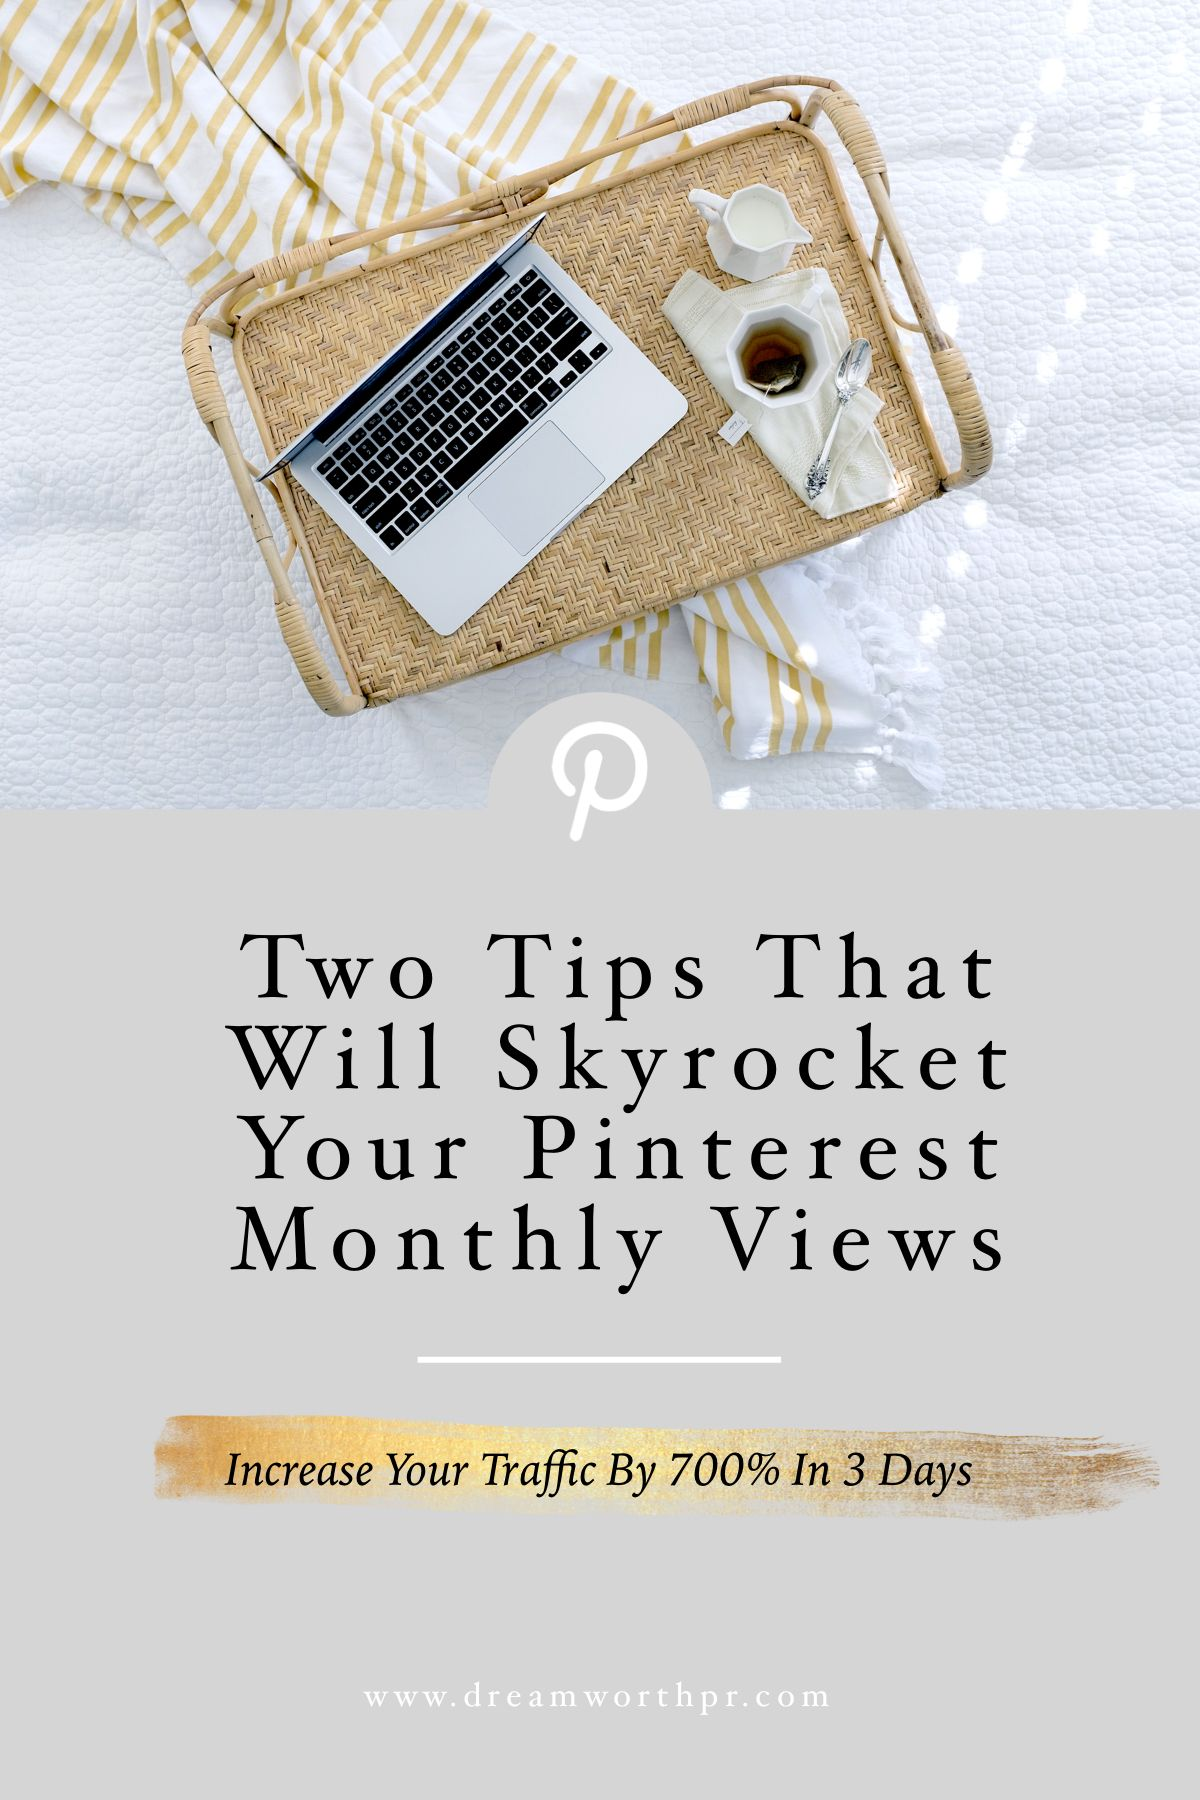 How I Increased My Pinterest Traffic By 700 In 3 Days